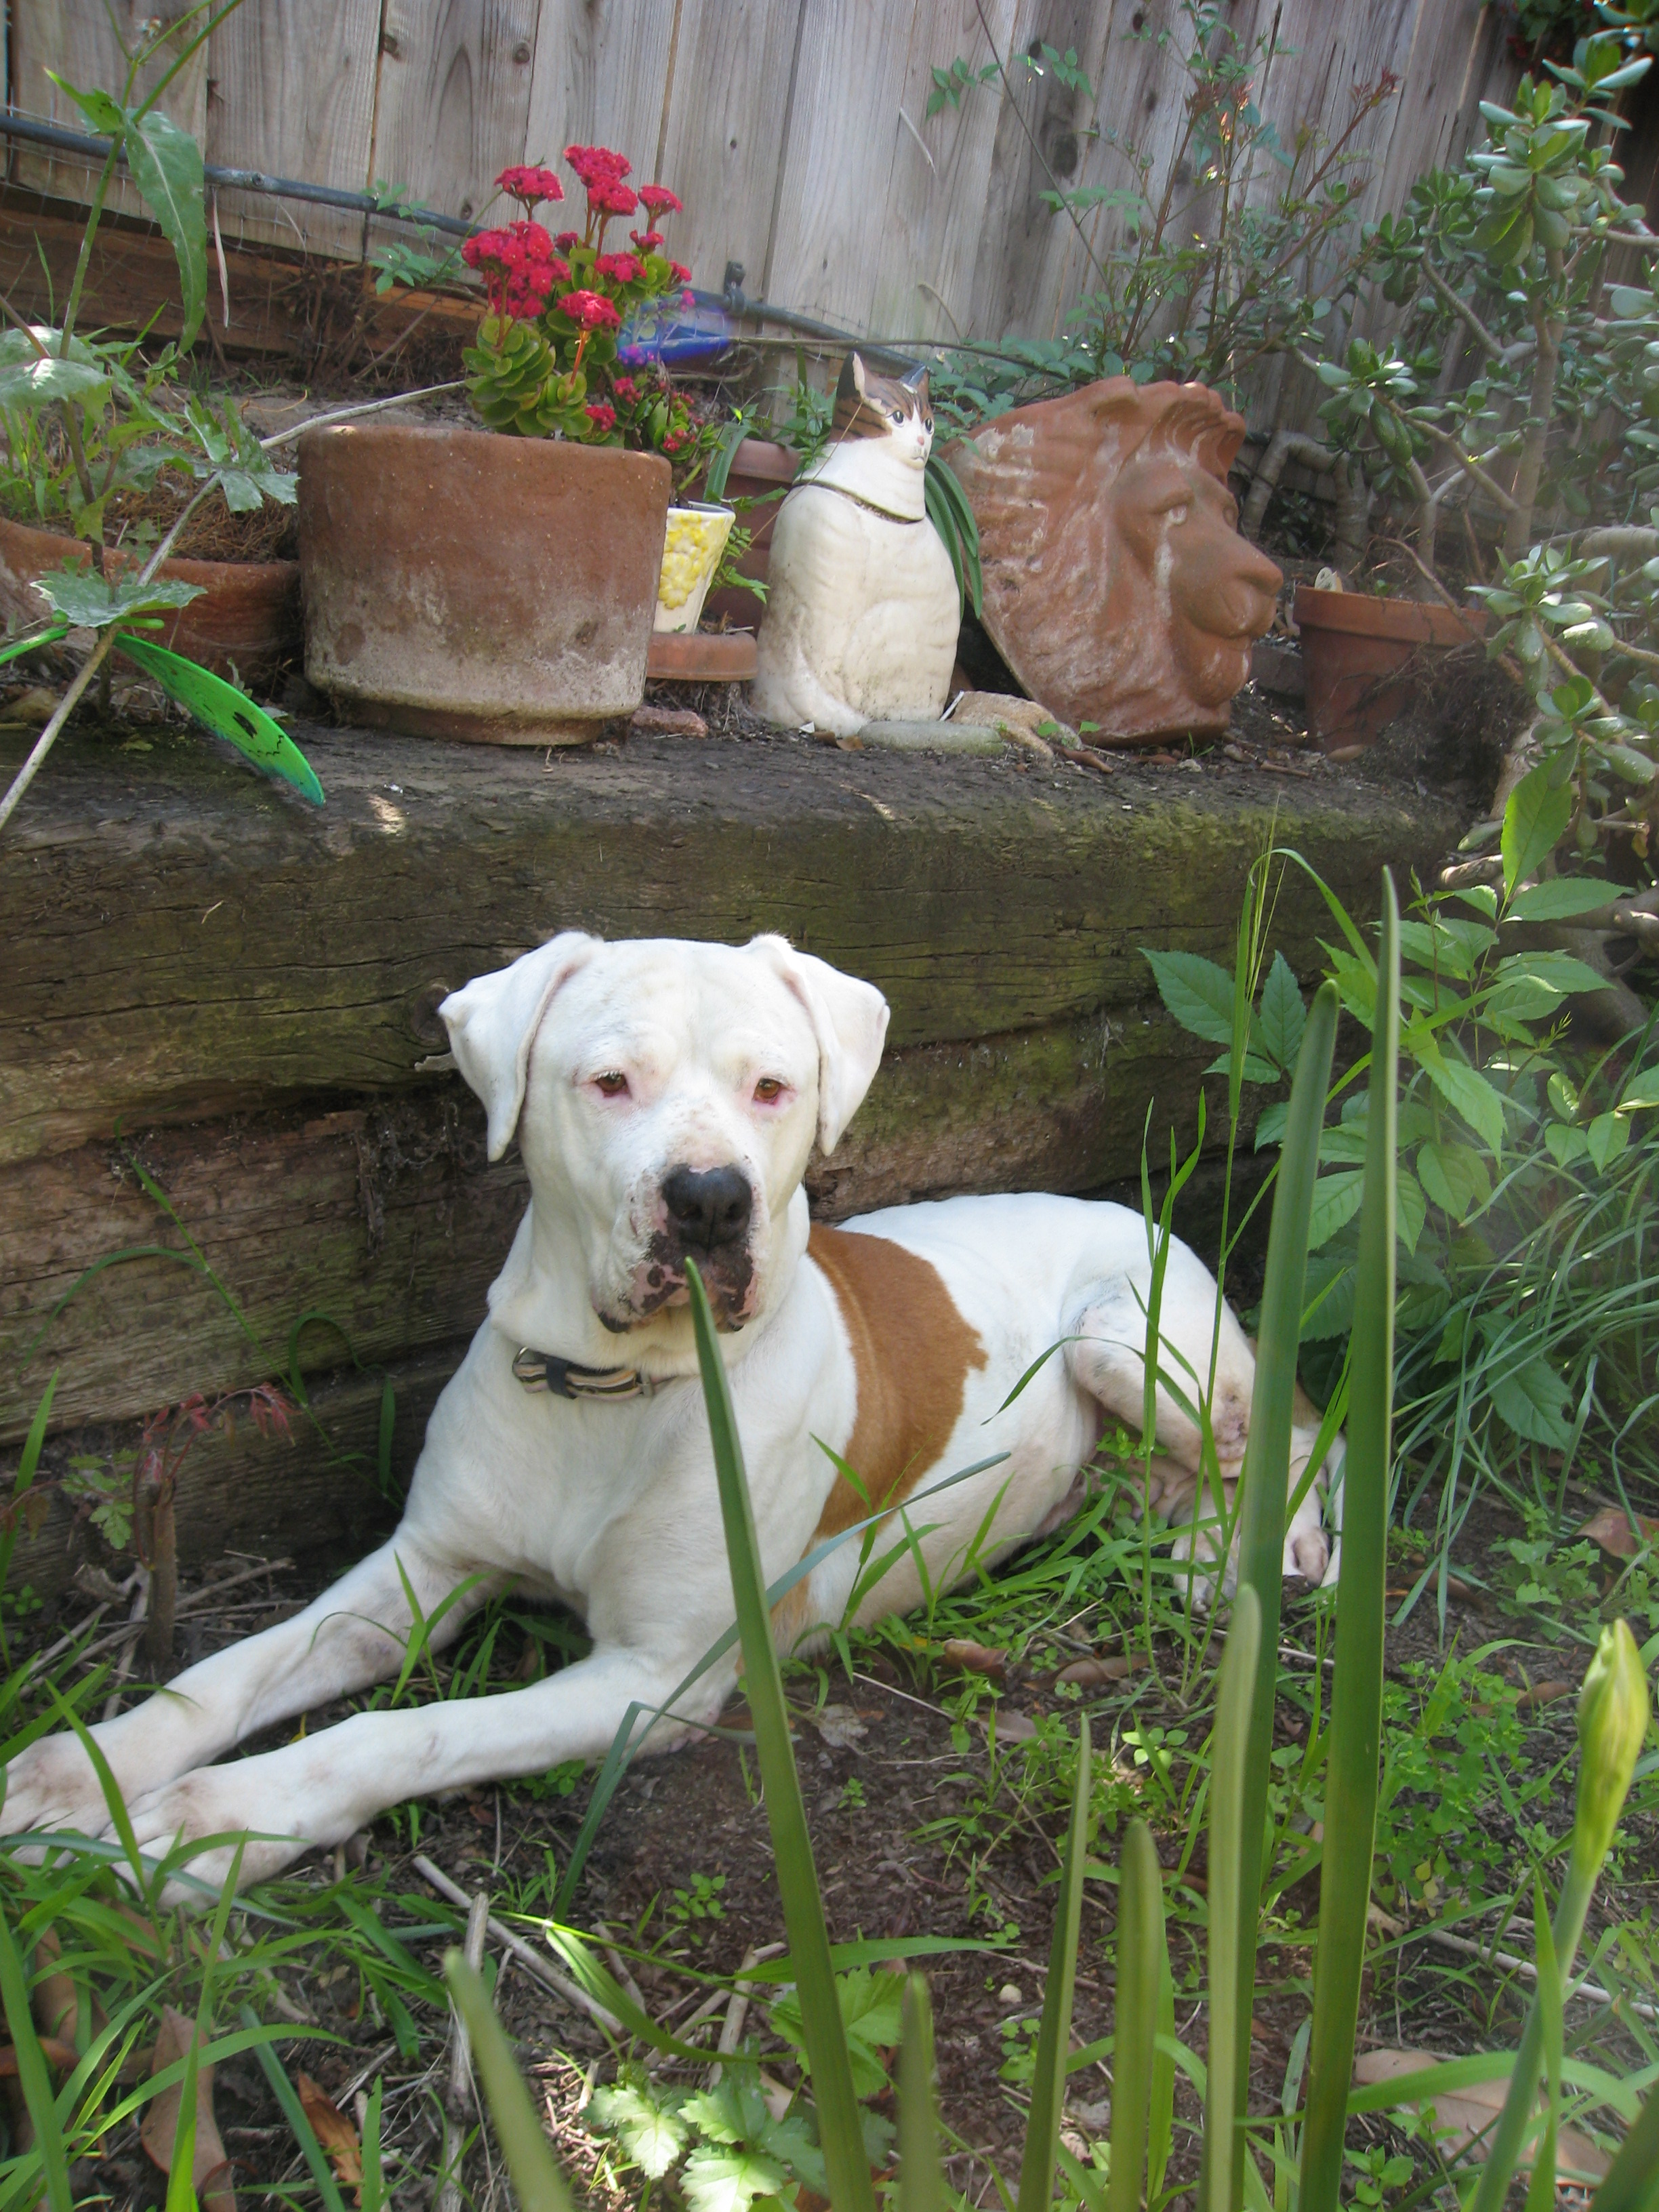 American Bulldog in the yard wallpaper